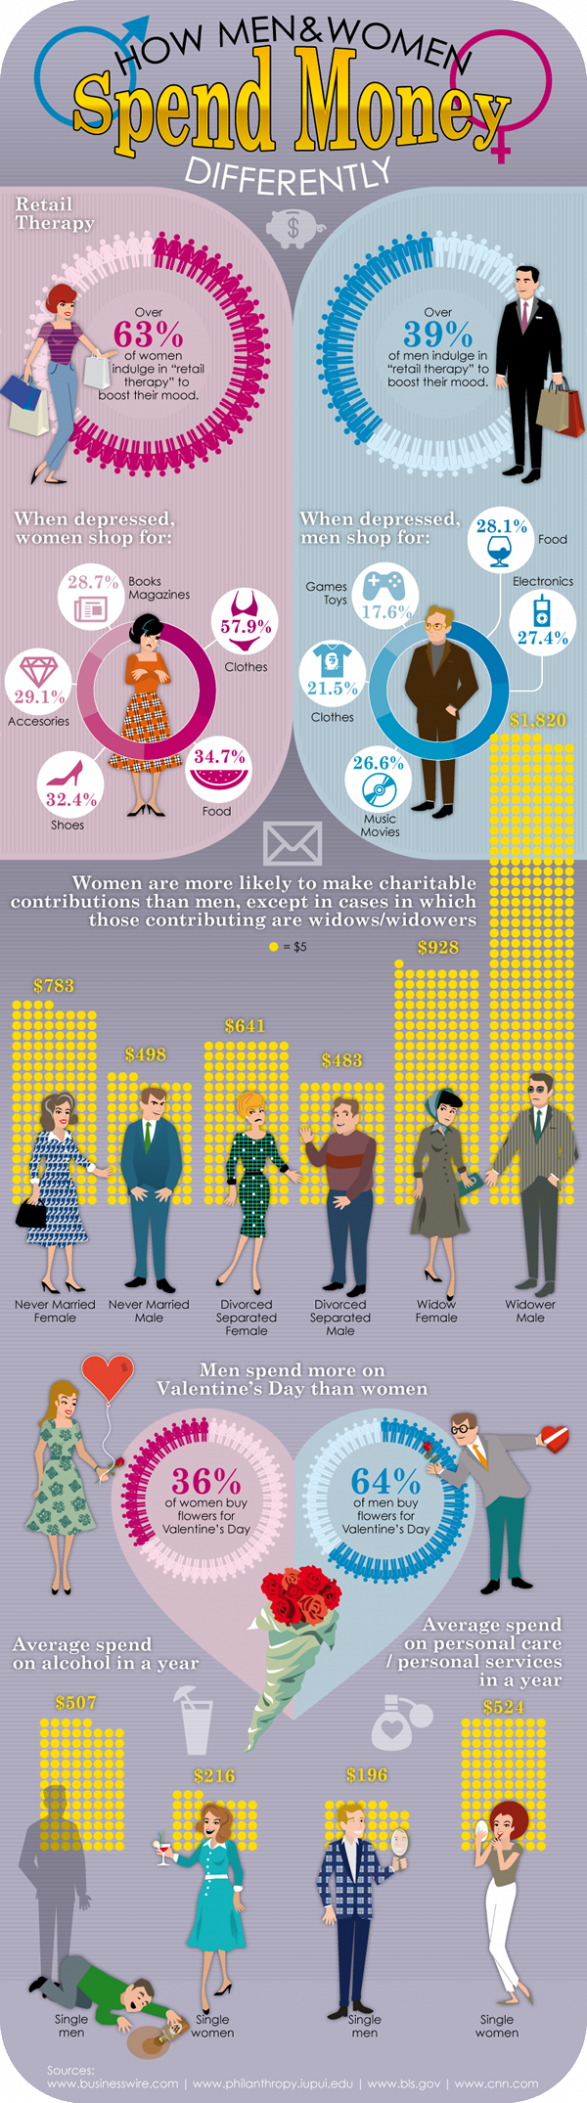 How Men & Women Spend Money DIfferently